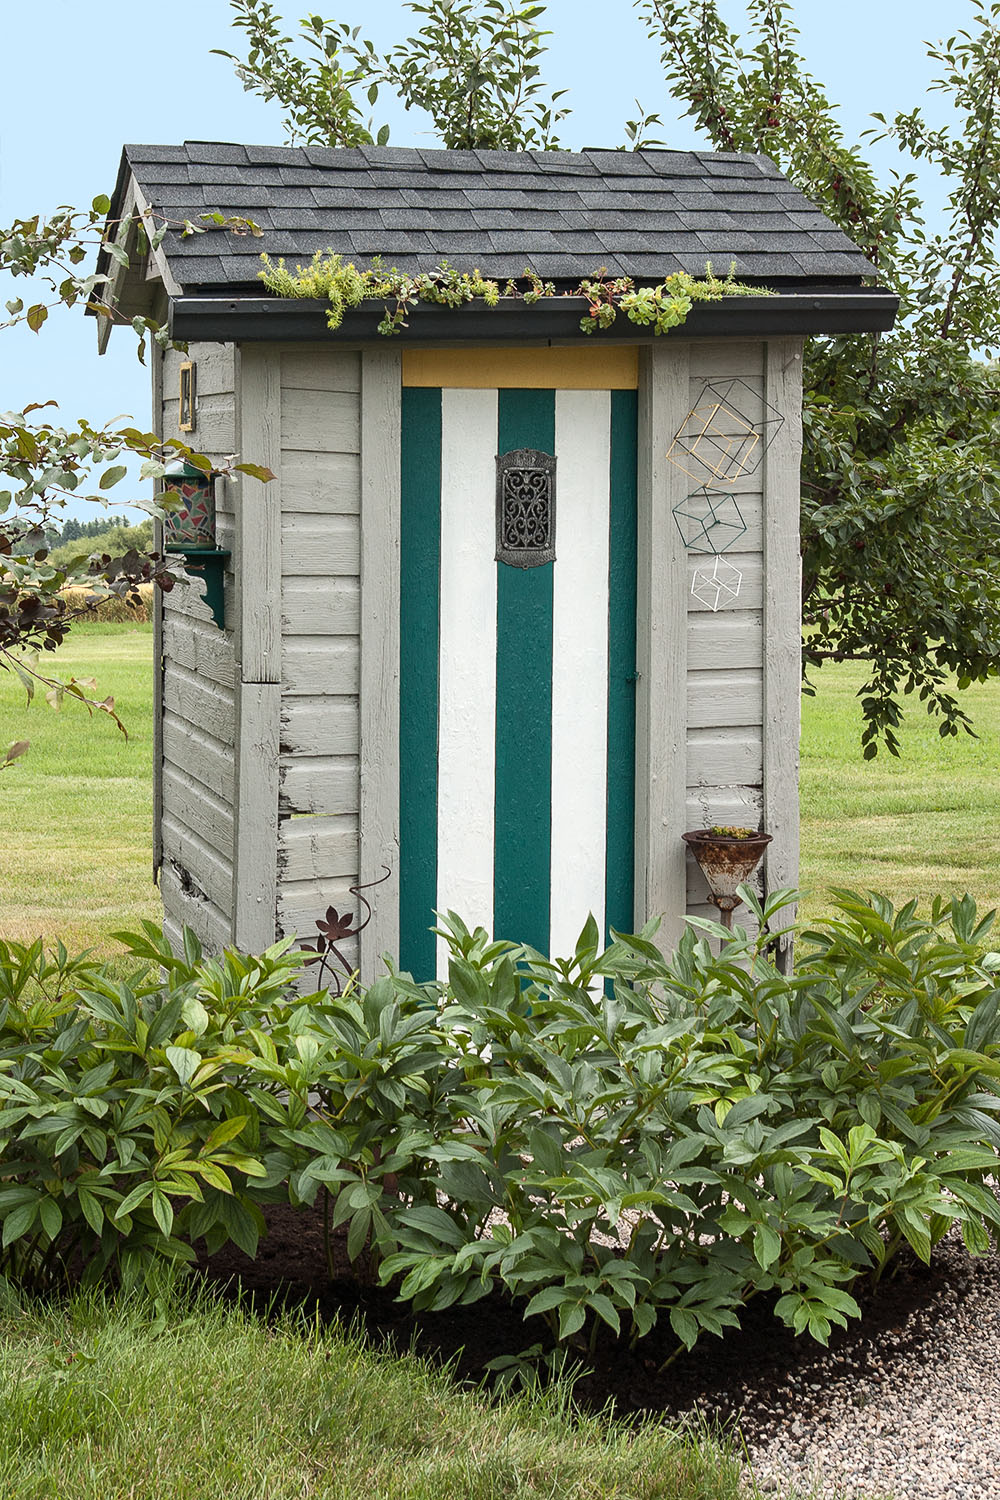 Fusion Mineral Paint makeover ▪ An outhouse turned into a garden shed.